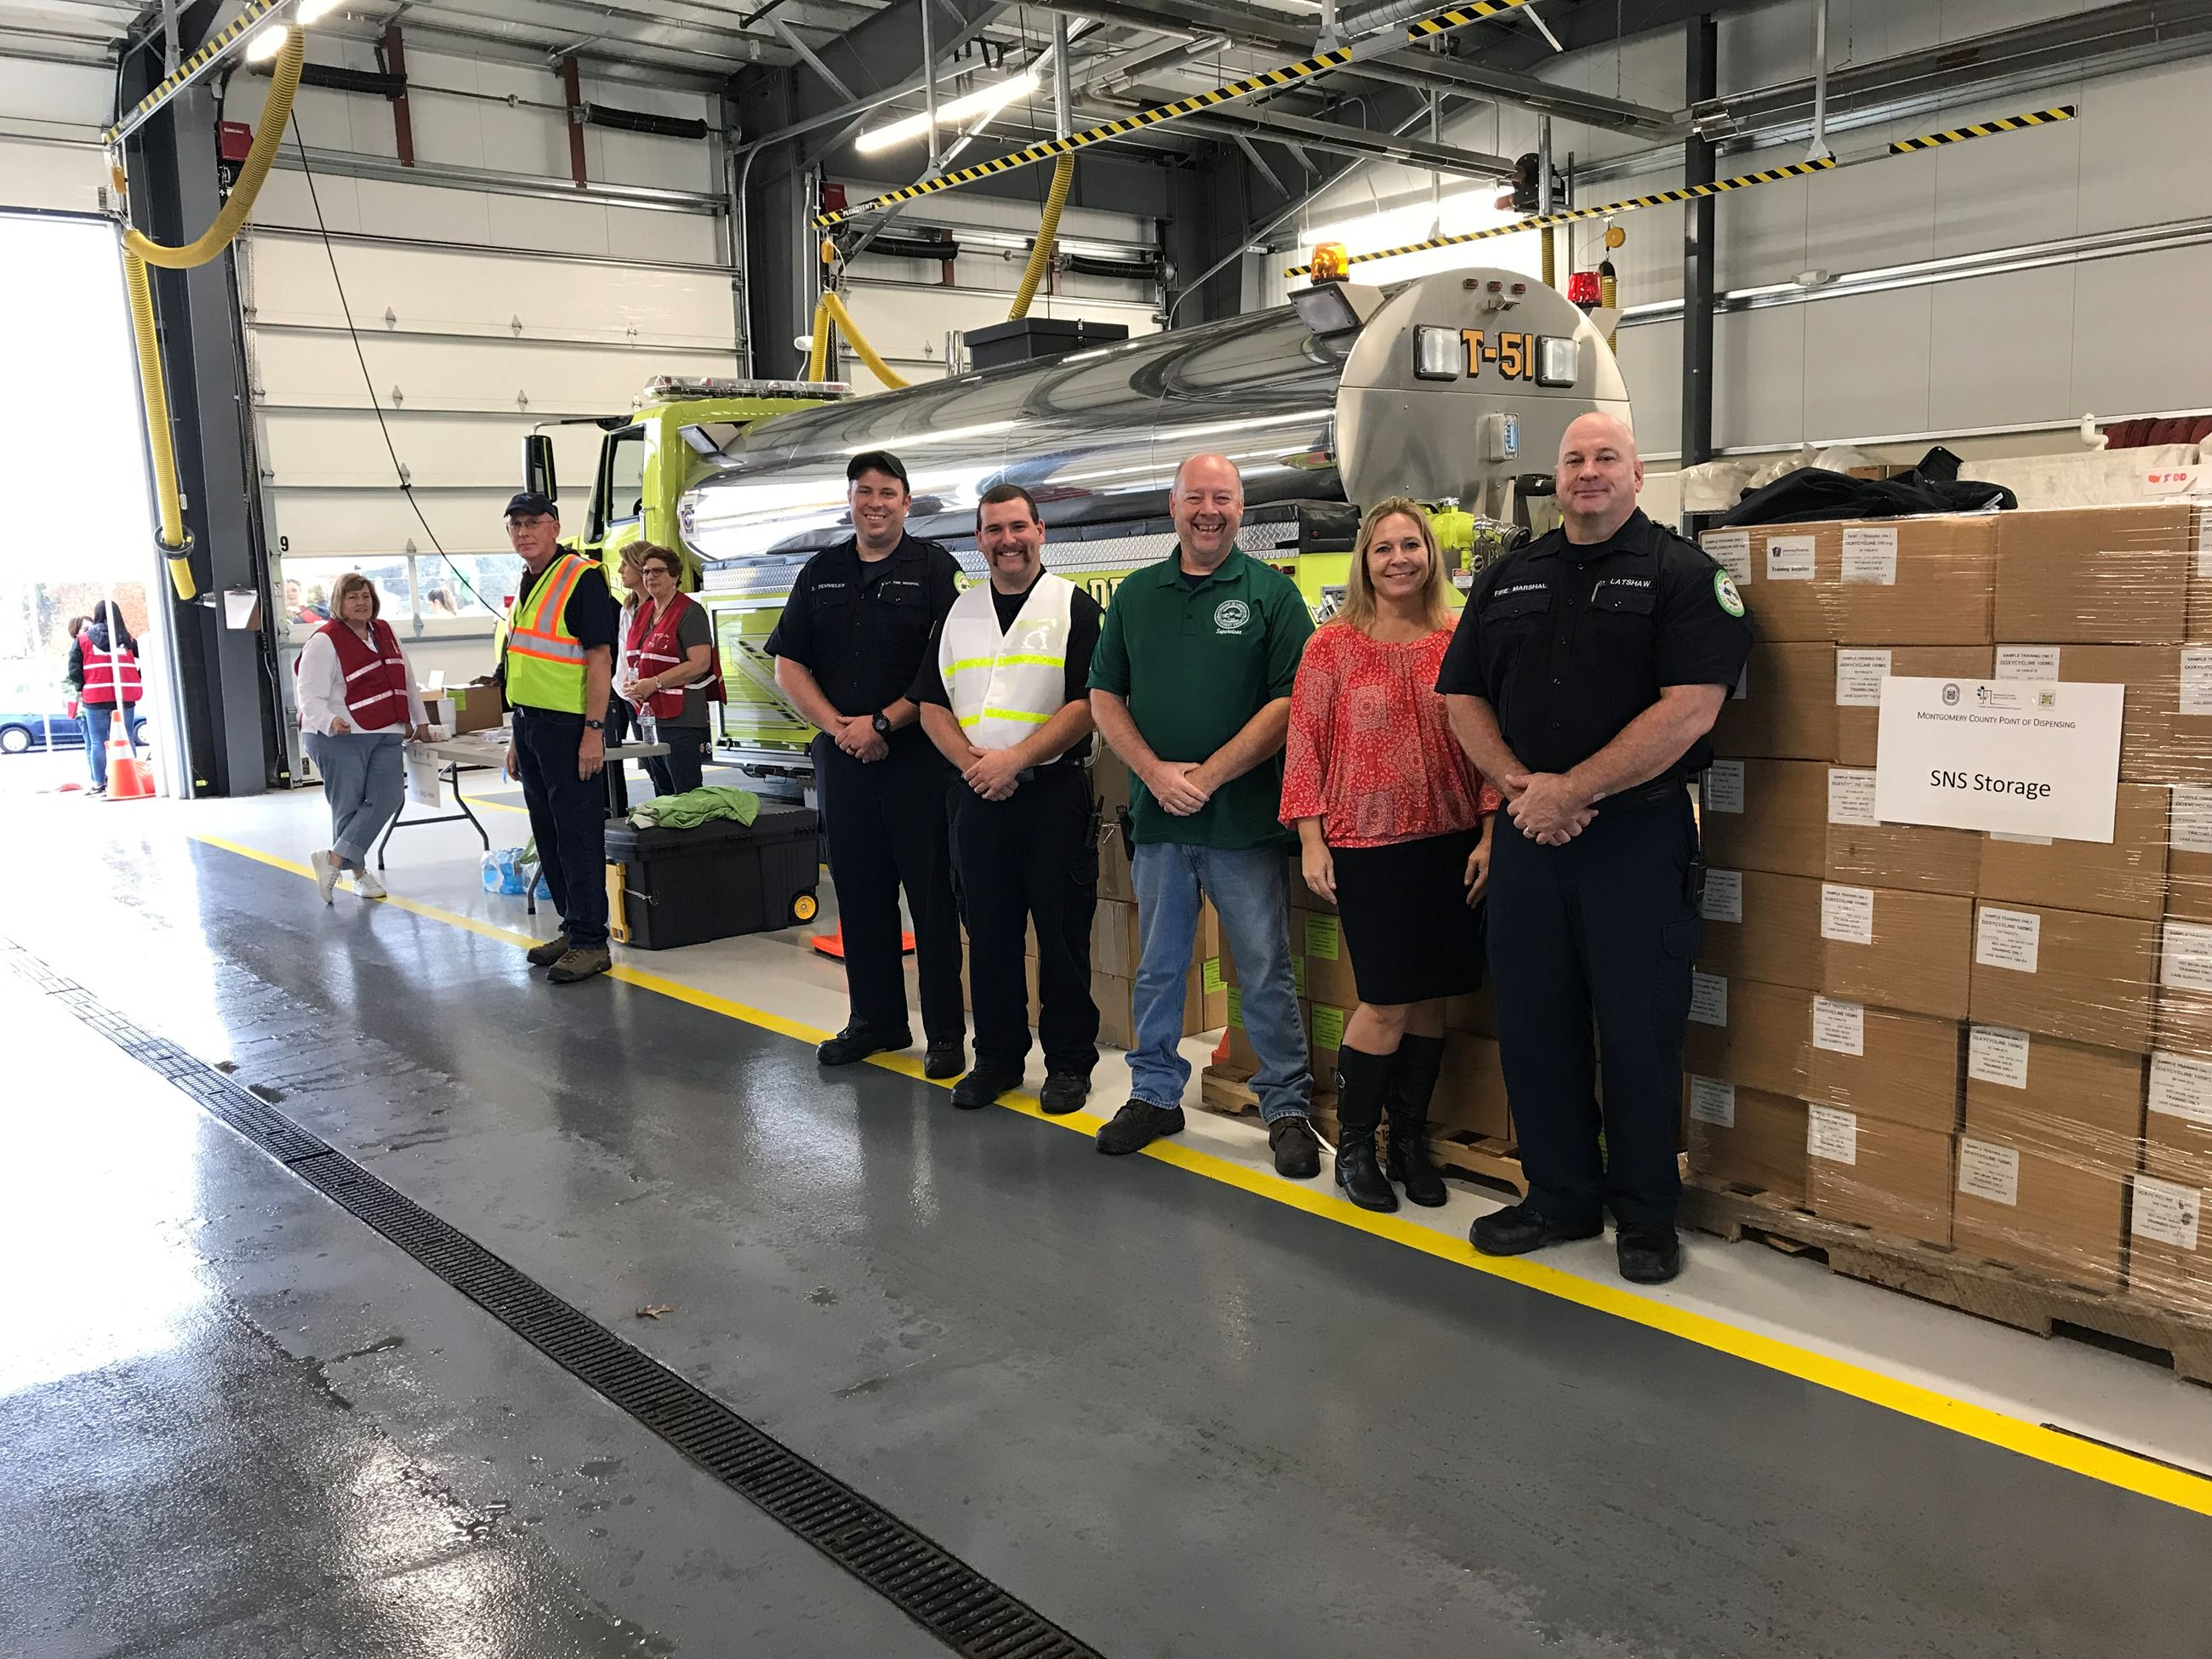 Limeric Township Hosts County POD Exercise